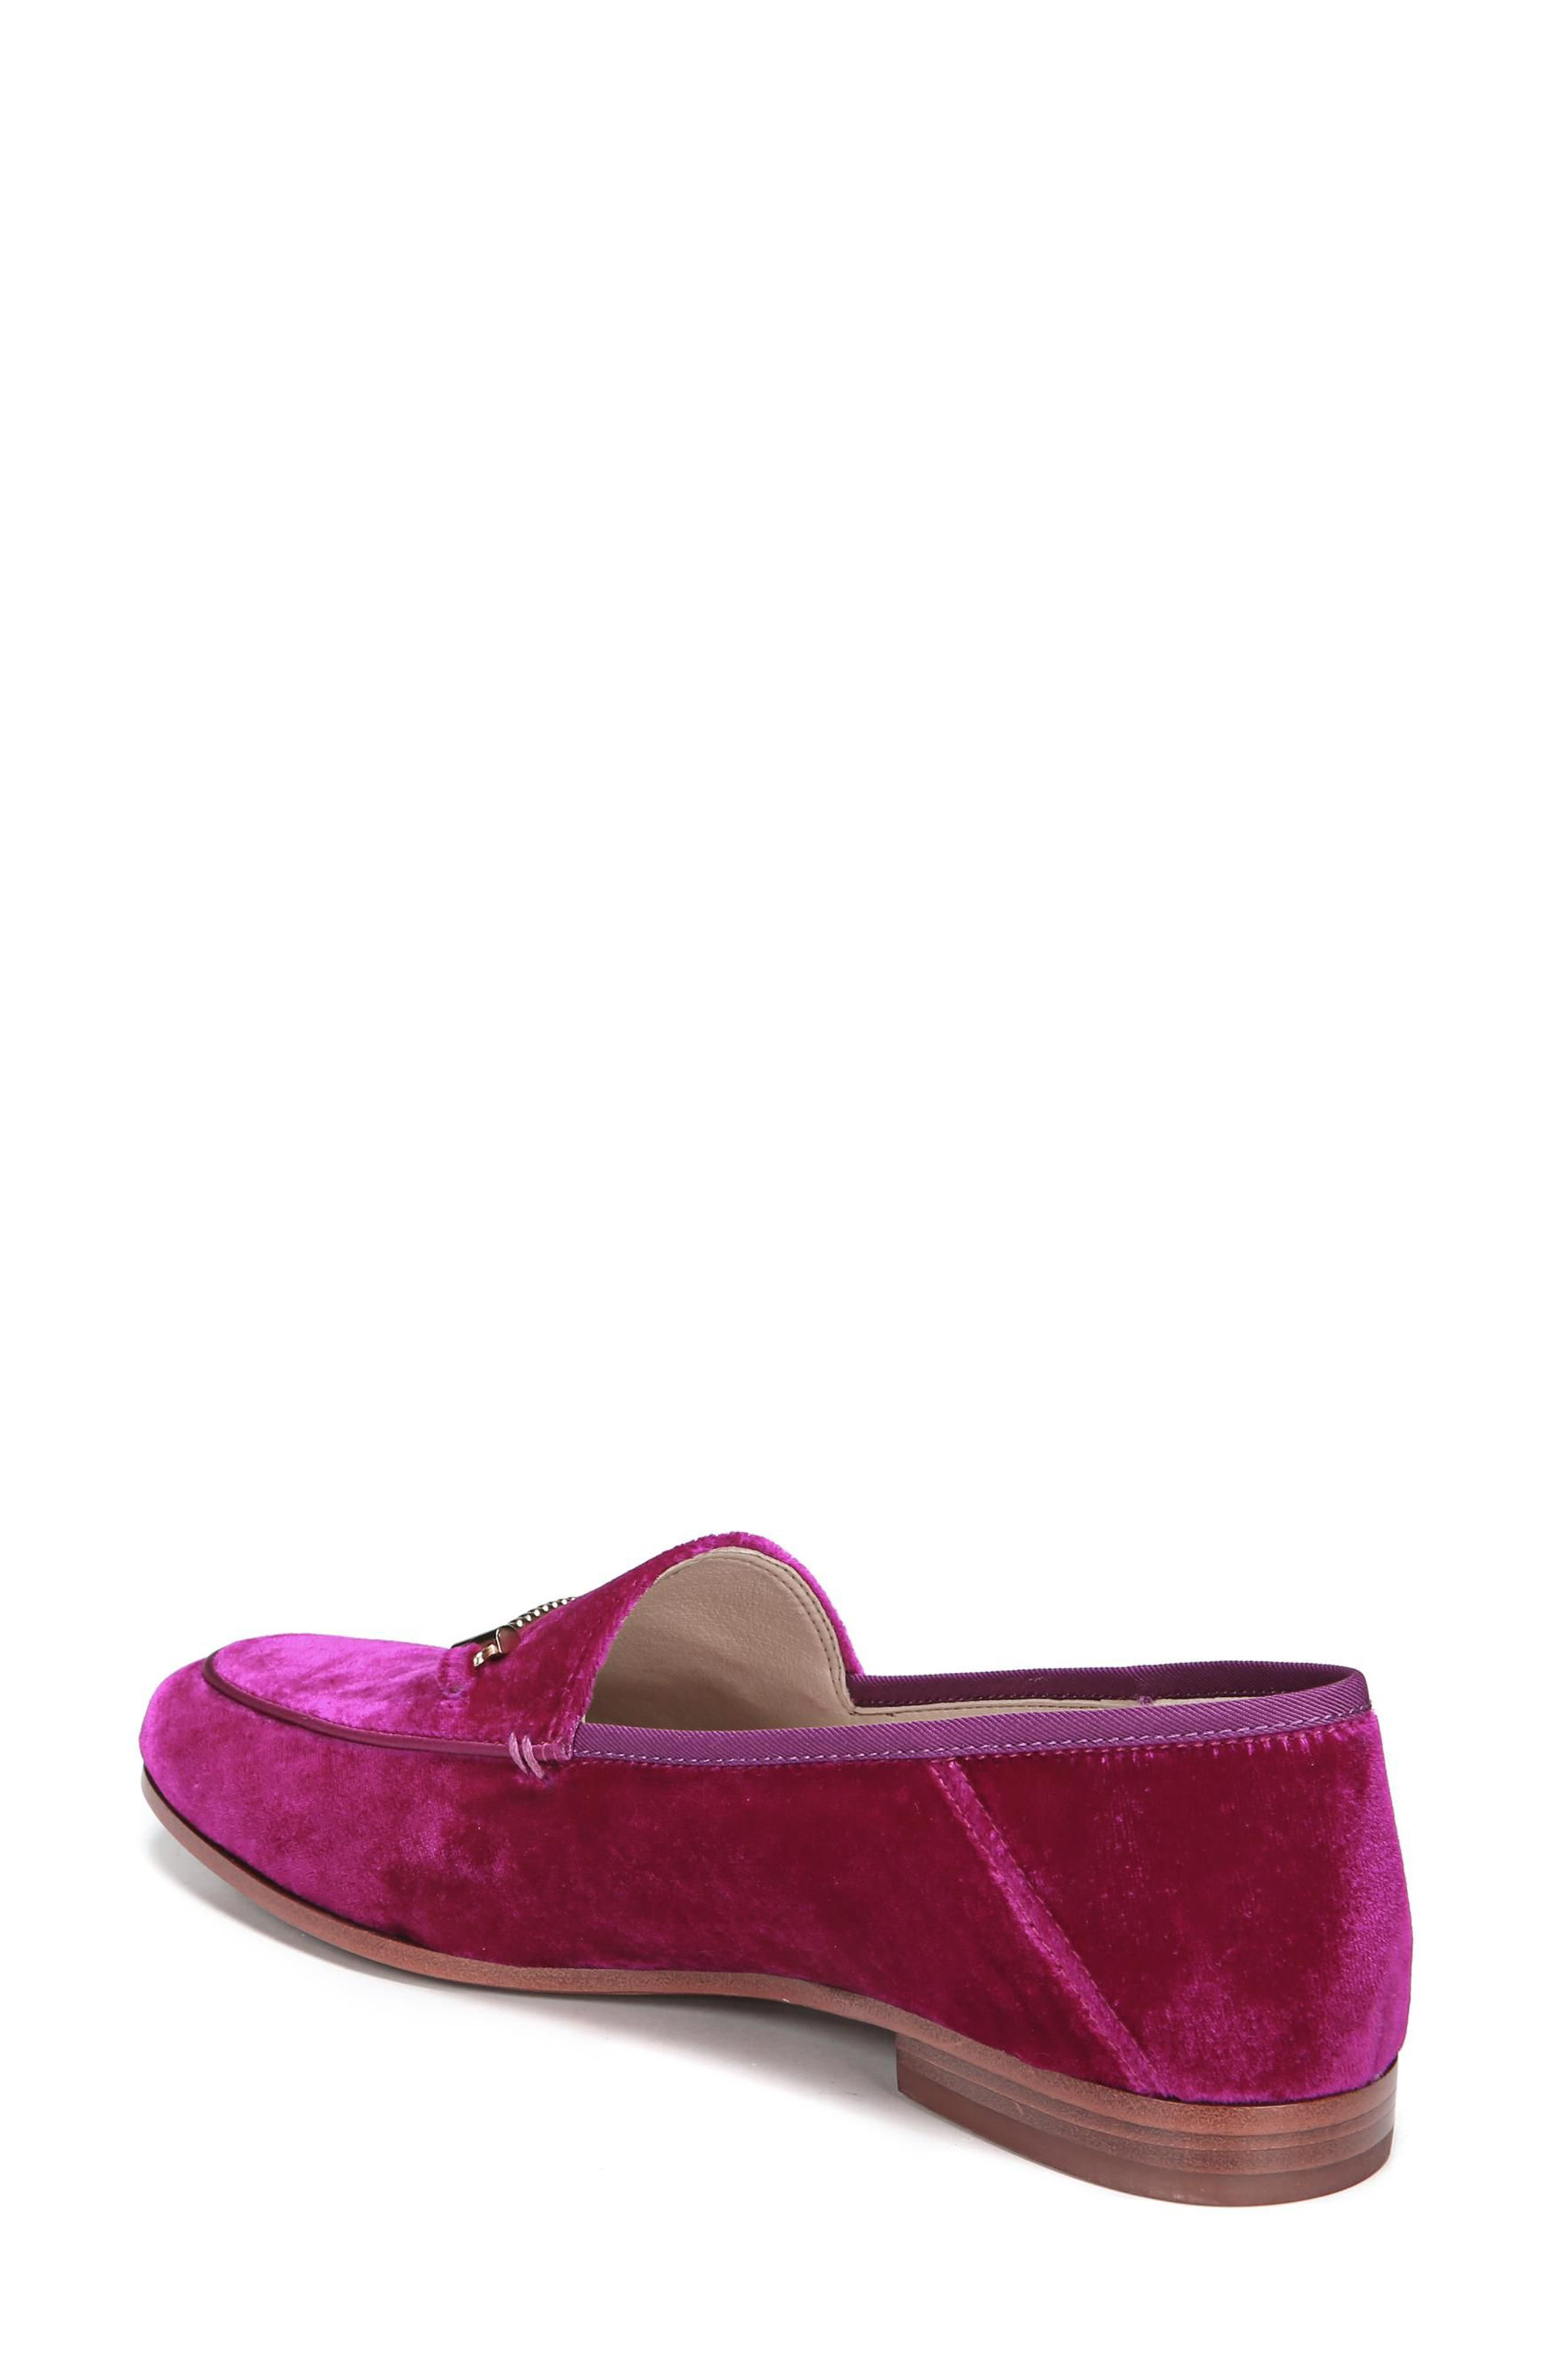 Moccasins Loafers For Women Nordstrom